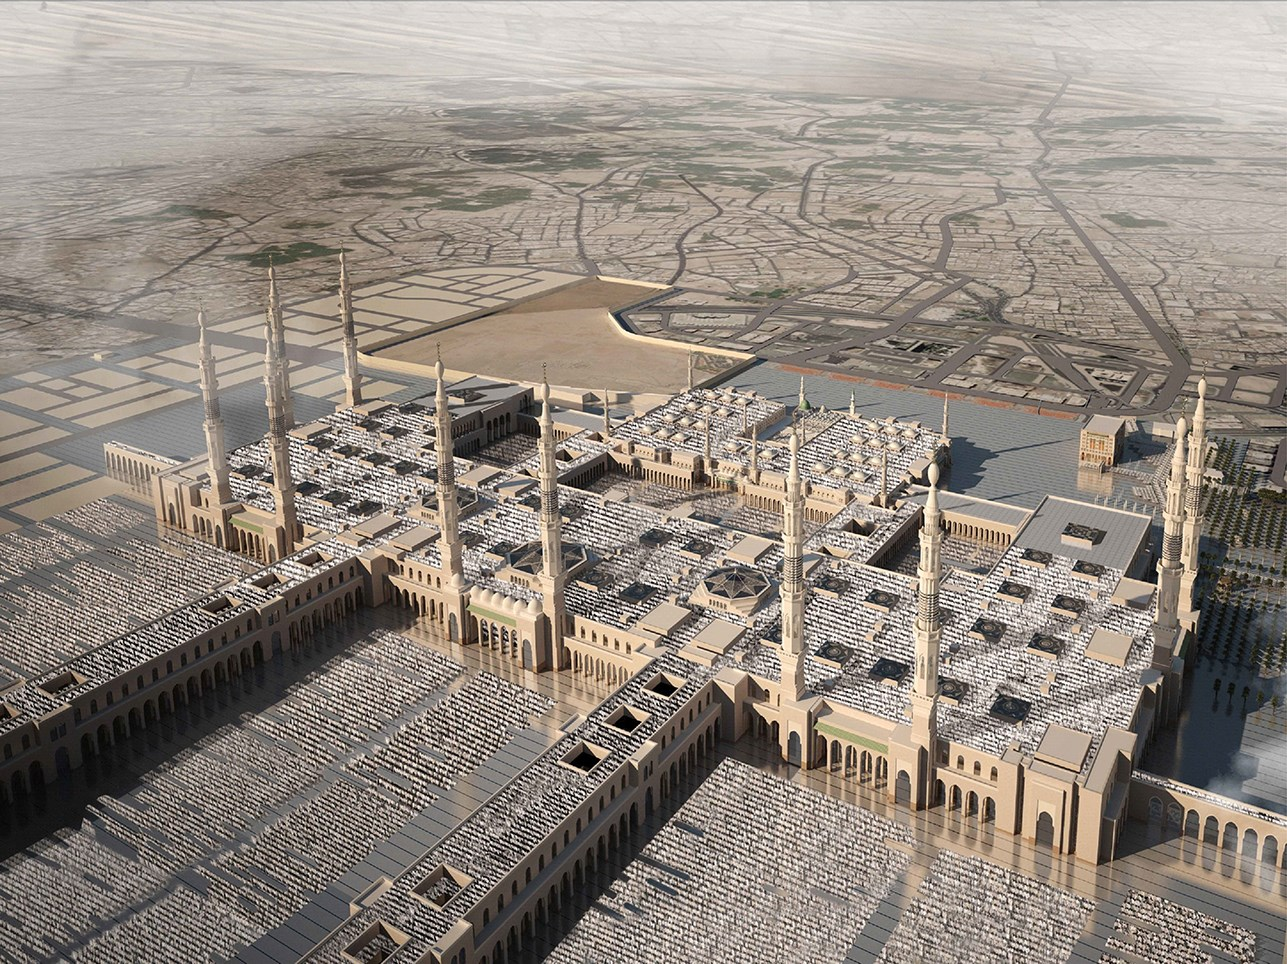 Al-Arabiya TV reports on the Madinah expansion